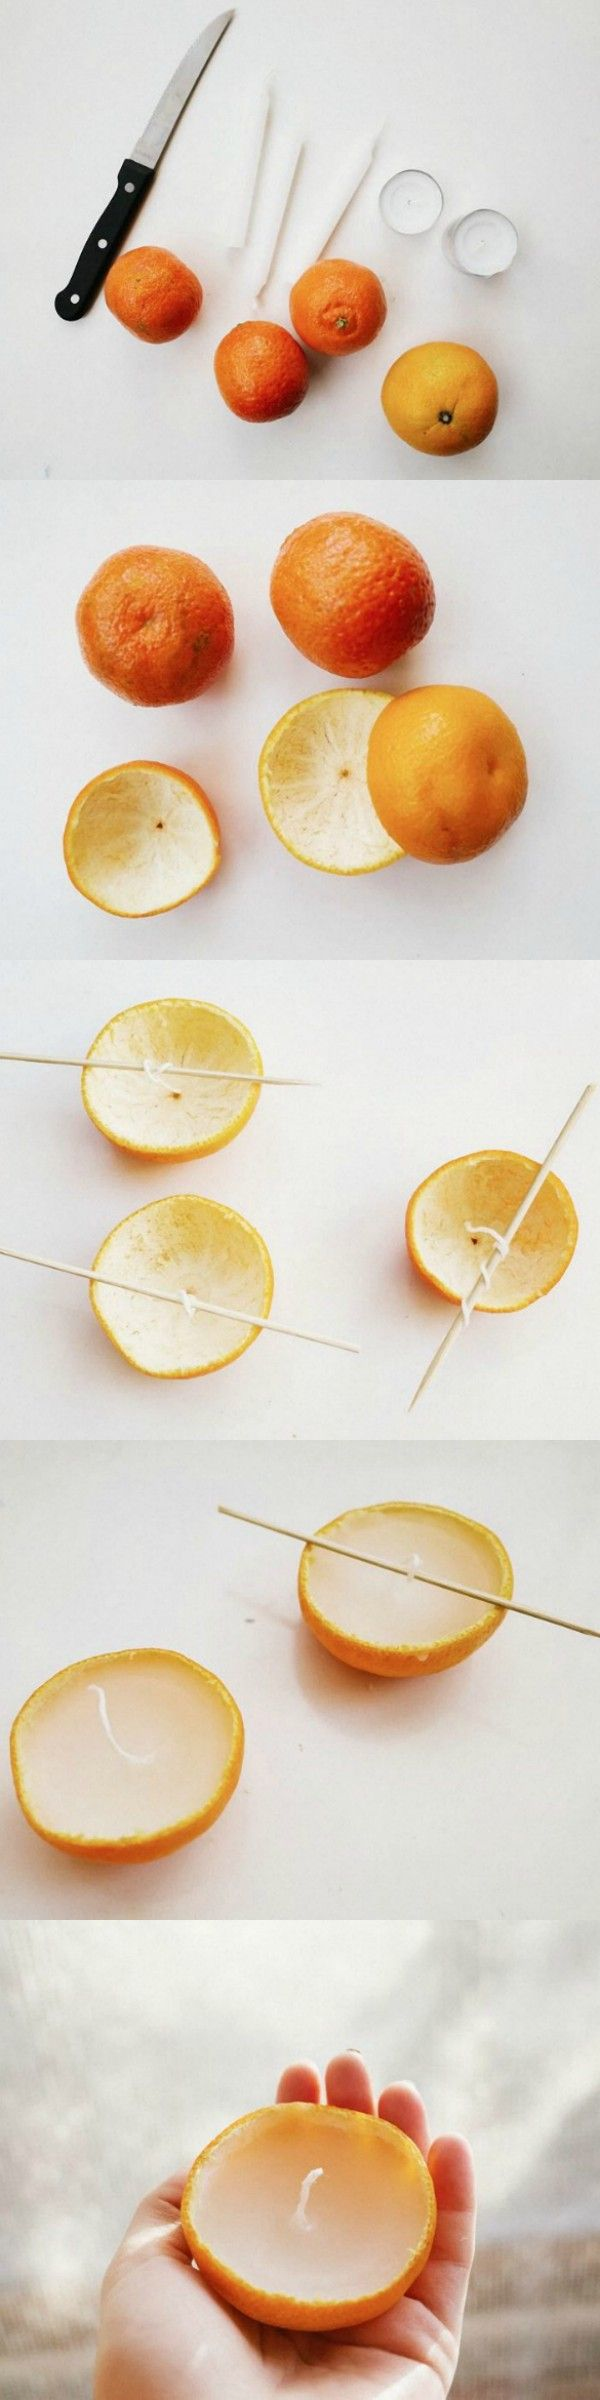 Make these beautiful candles from oranges. What a wonderful addition to the festive table! #diy #christmas #candles